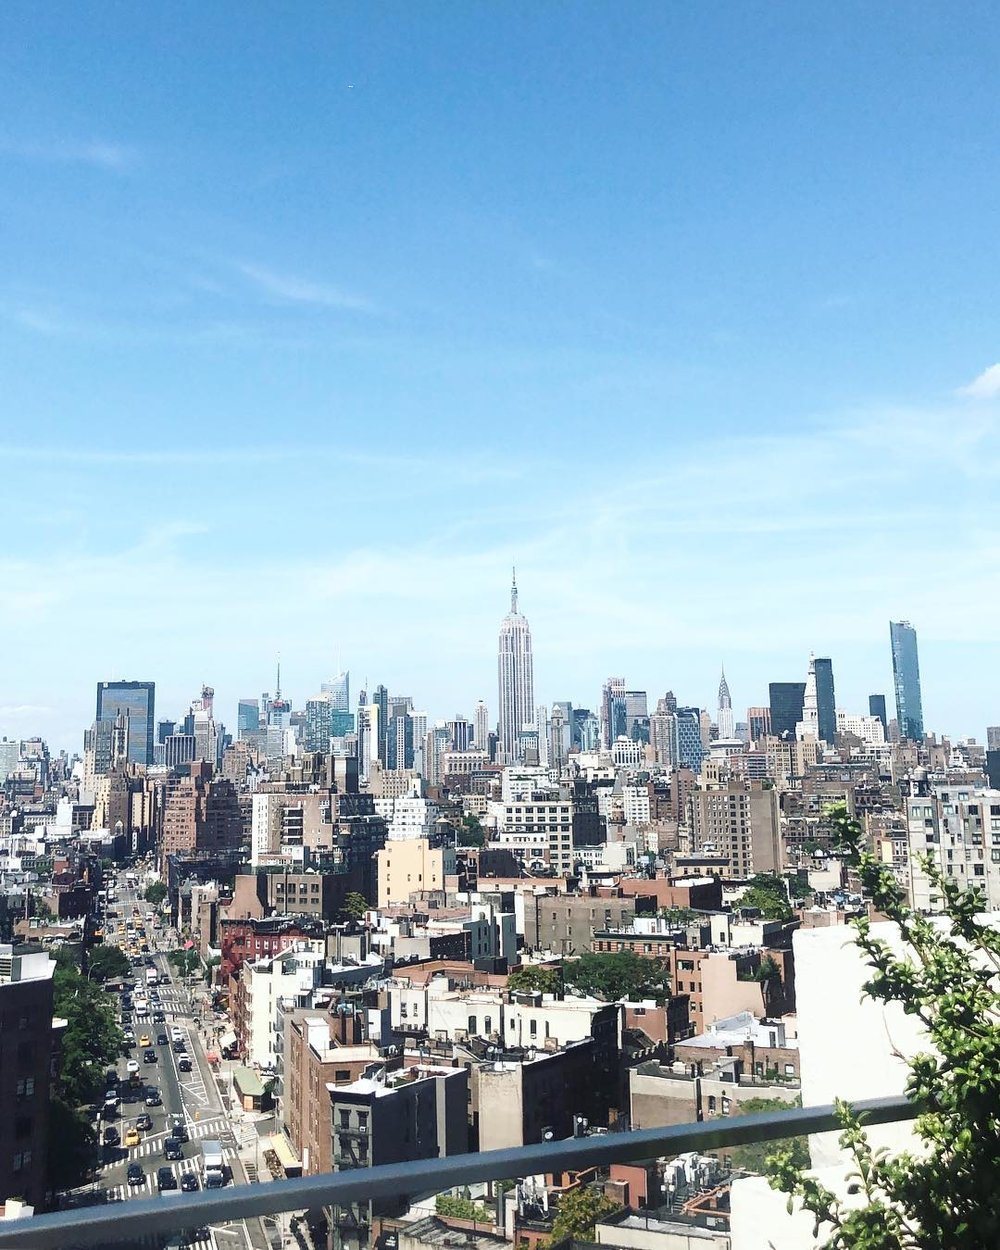 New York City views from the Squarespace office.